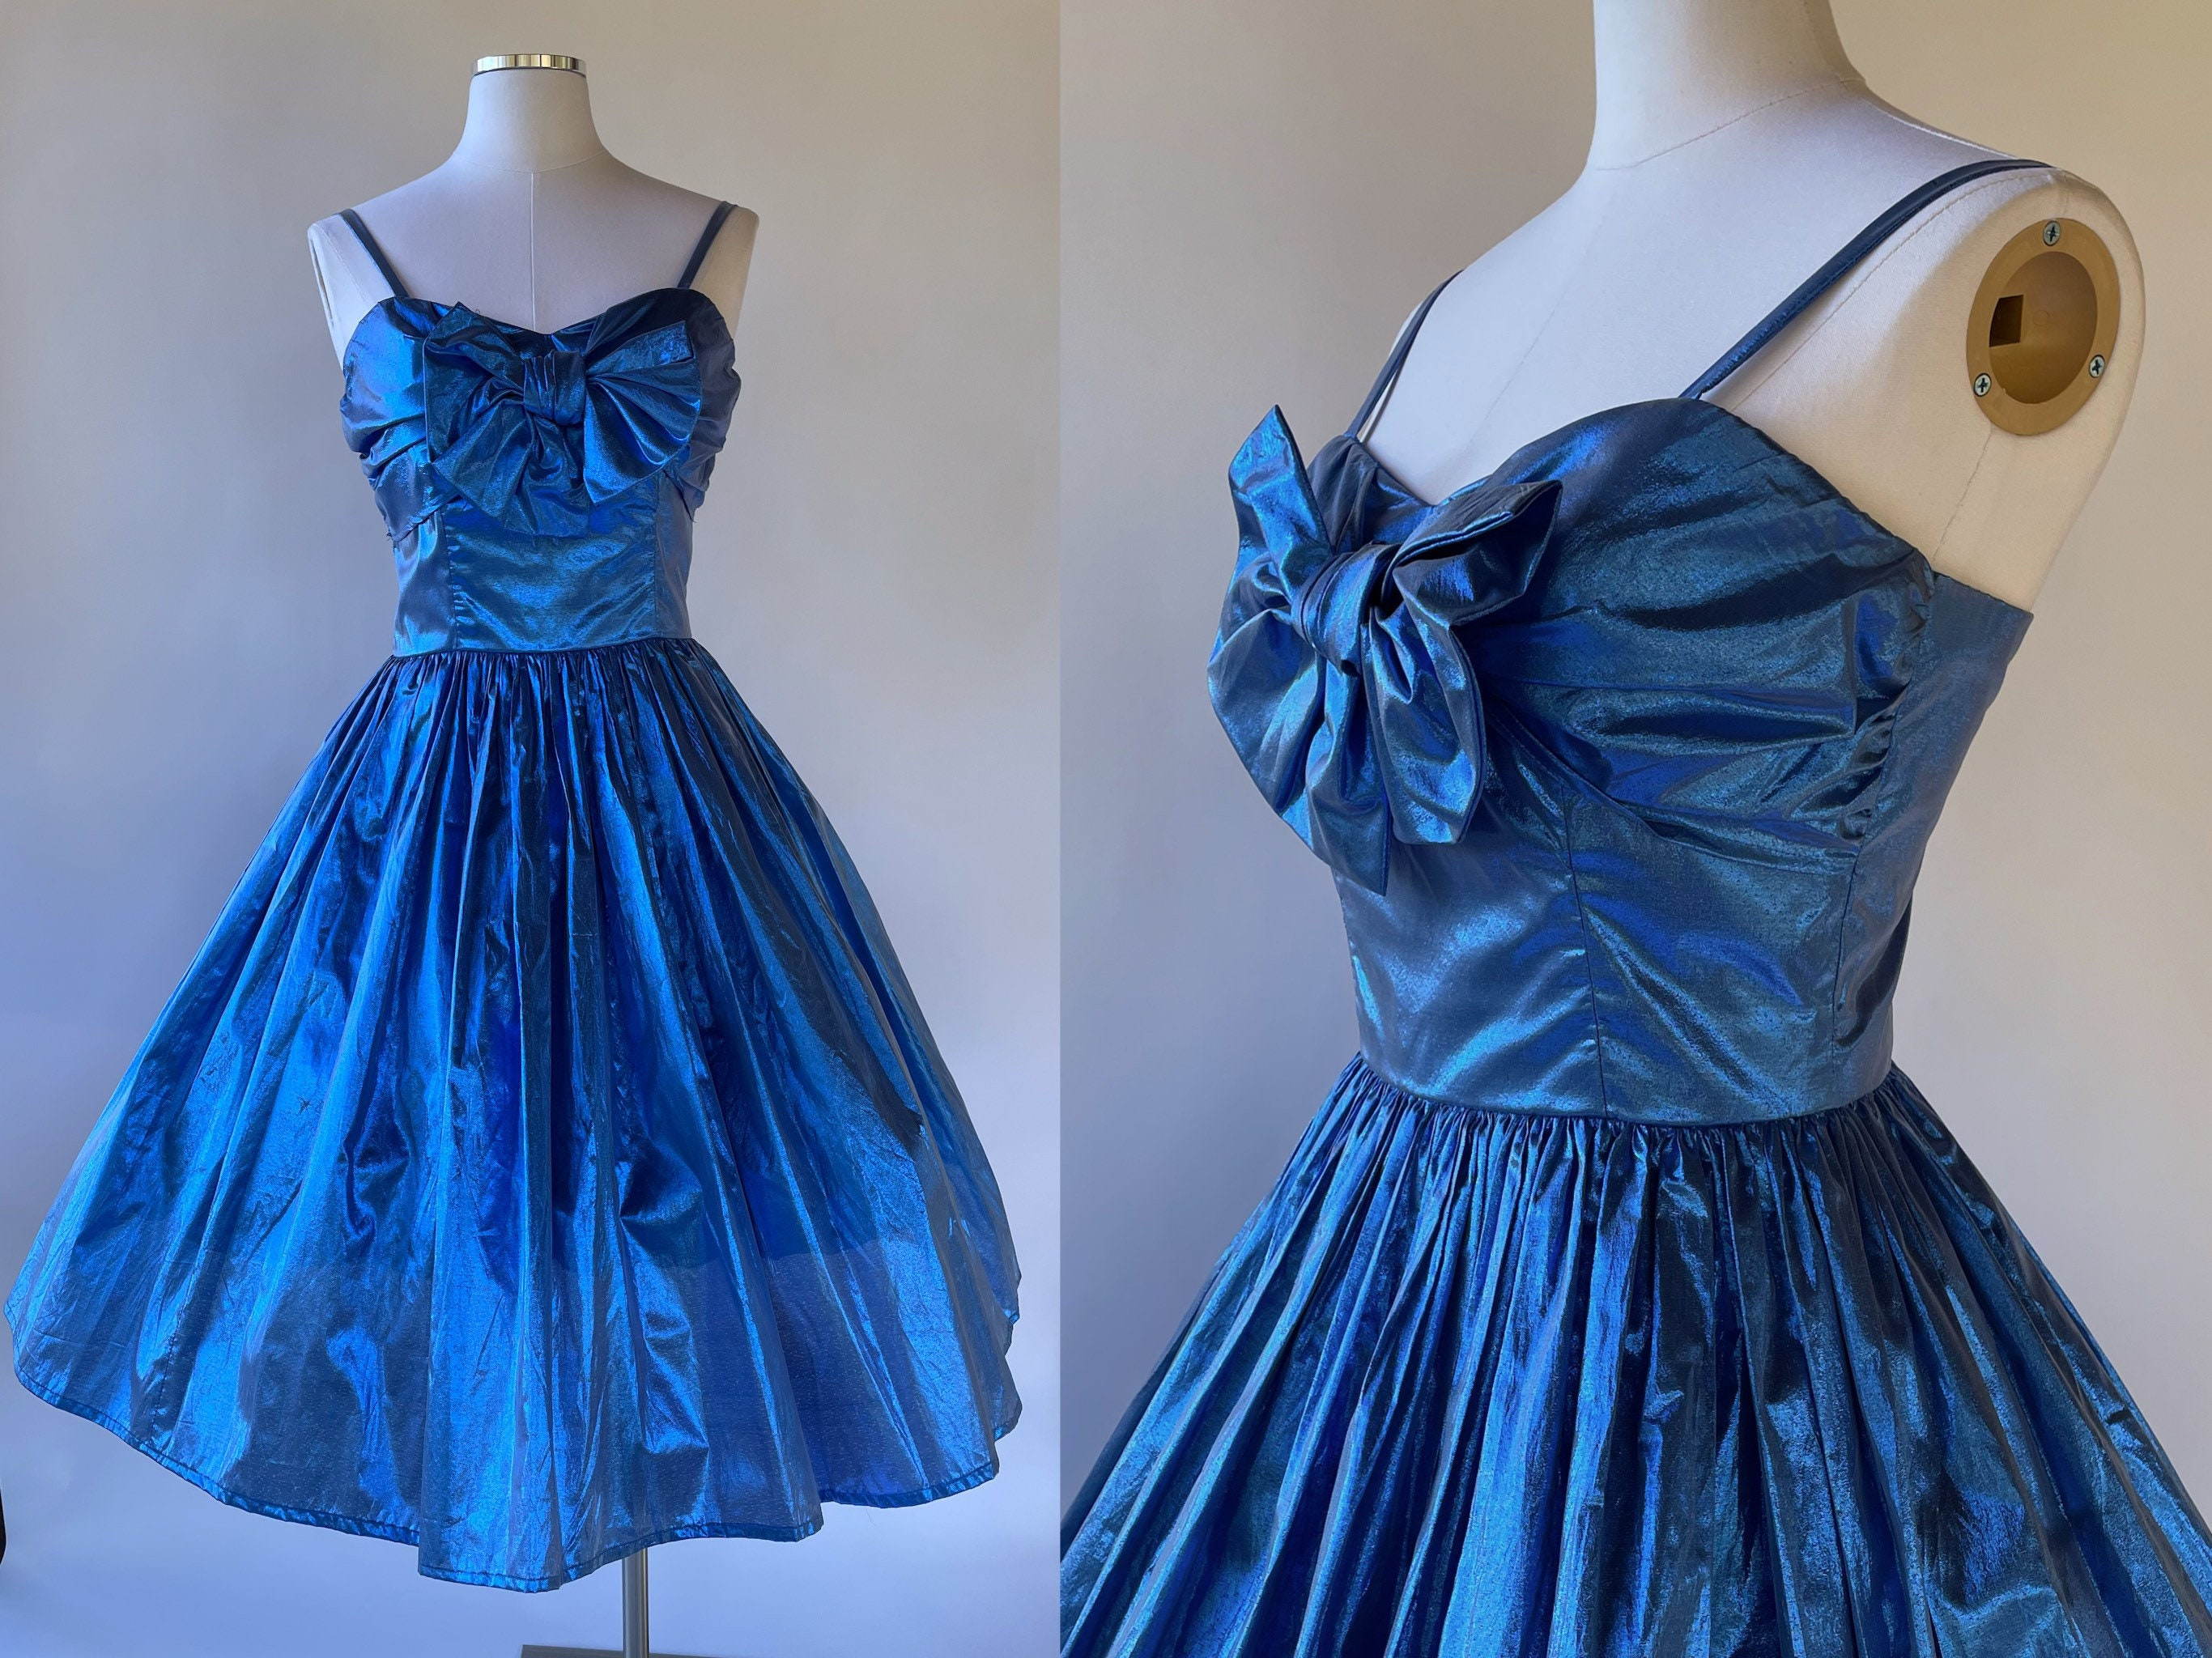 80s Dresses | Casual to Party Dresses Vintage 1980s Shiny Blue Metallic Bubble Dress W Spaghetti Strap, Large BowHandmade, Prom, Formal, Party, Cocktail, Romy  Michelle $149.99 AT vintagedancer.com